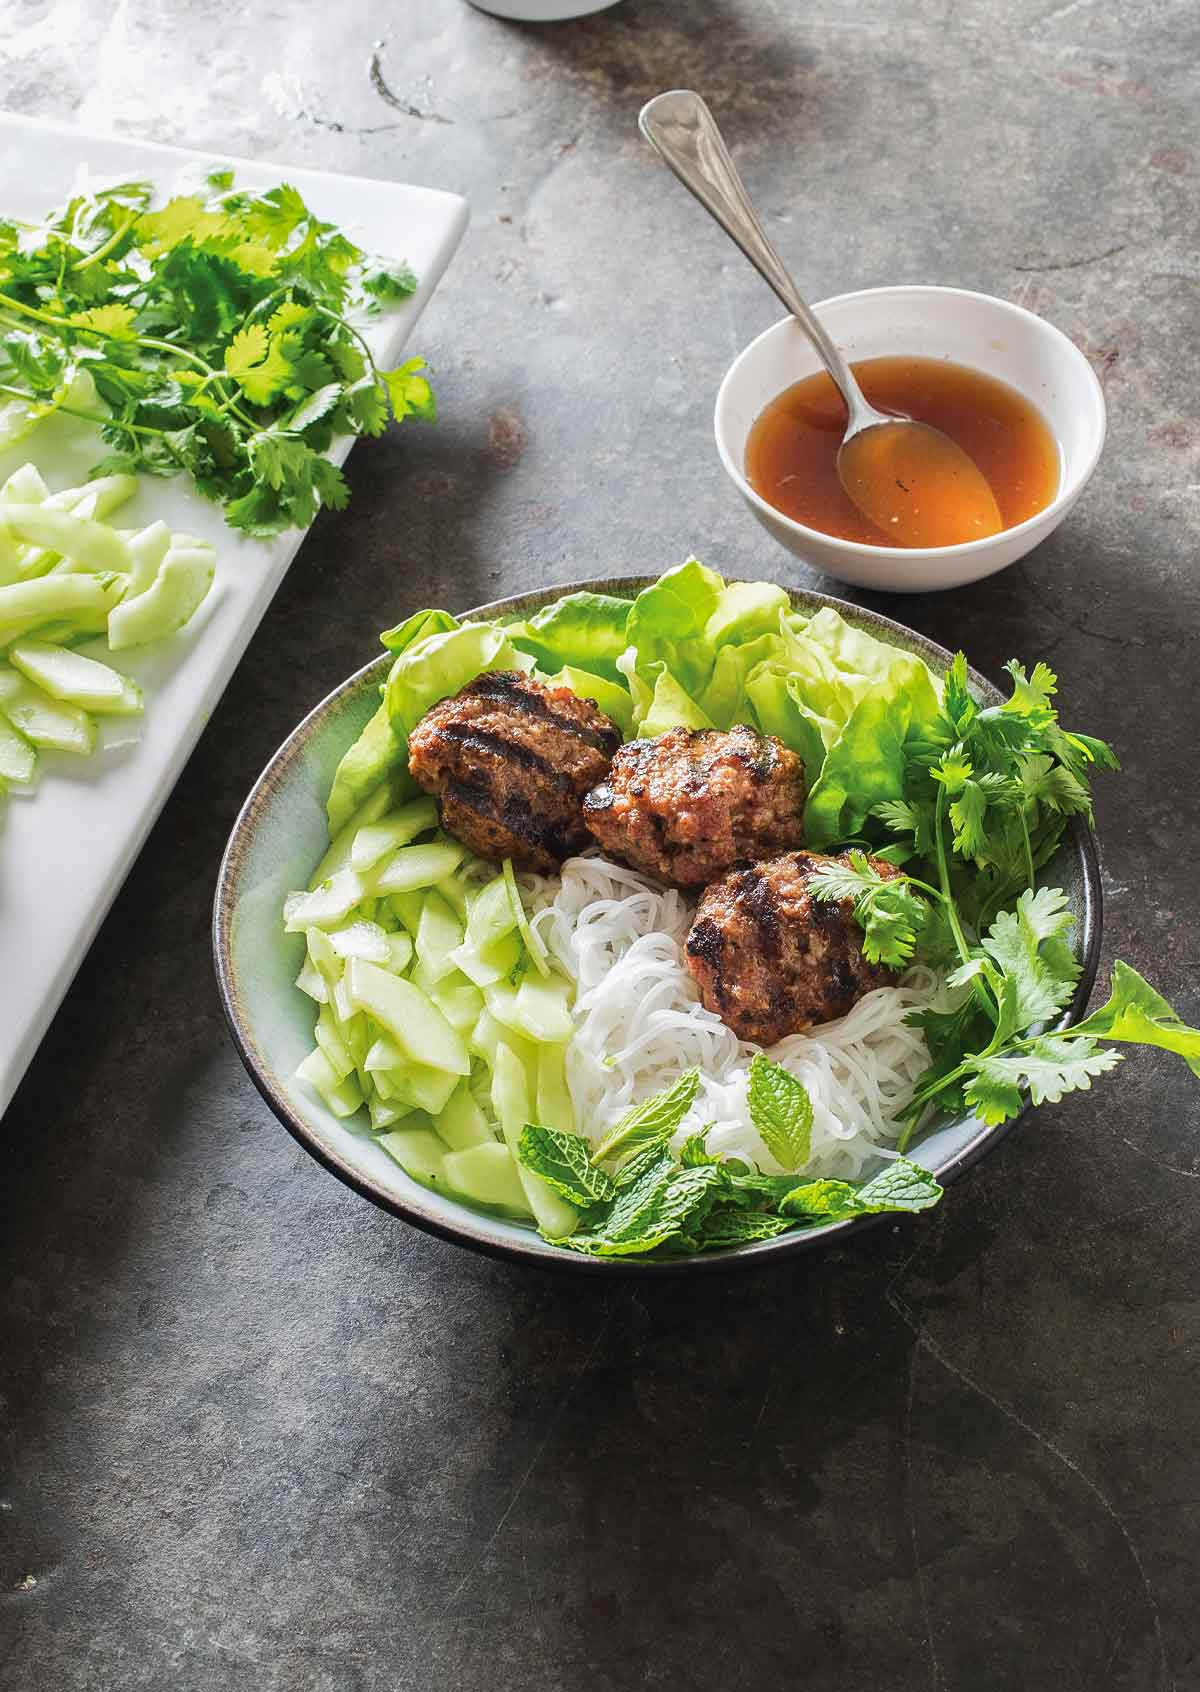 A dish filled with Vietnamese grilled pork patties with rice noodles and an crunchy vegetables.